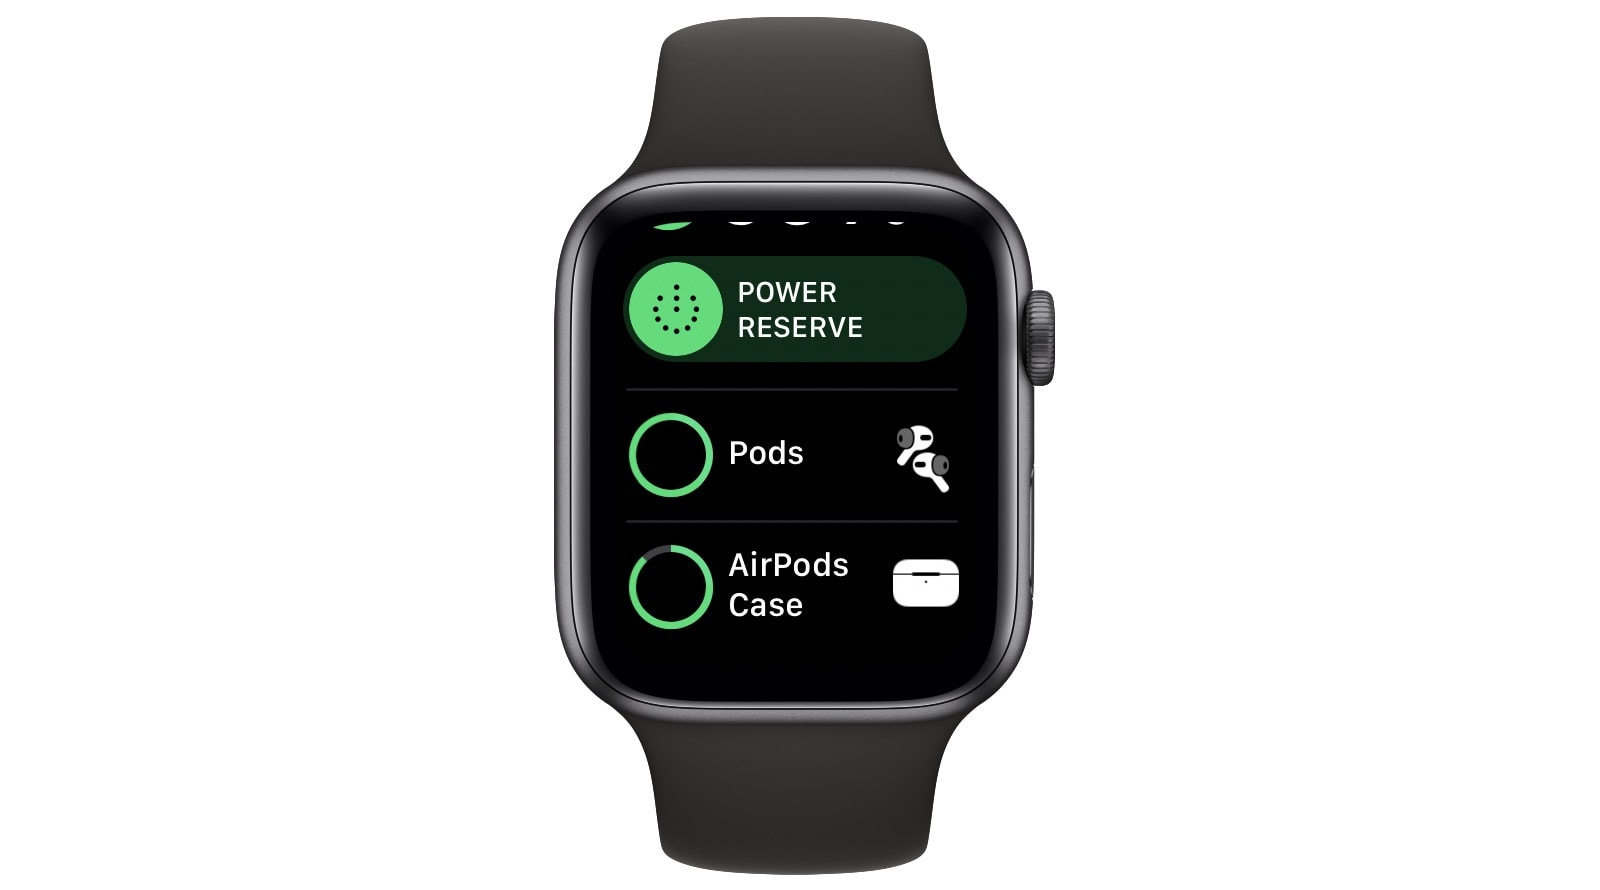 Apple Watch AirPods battery